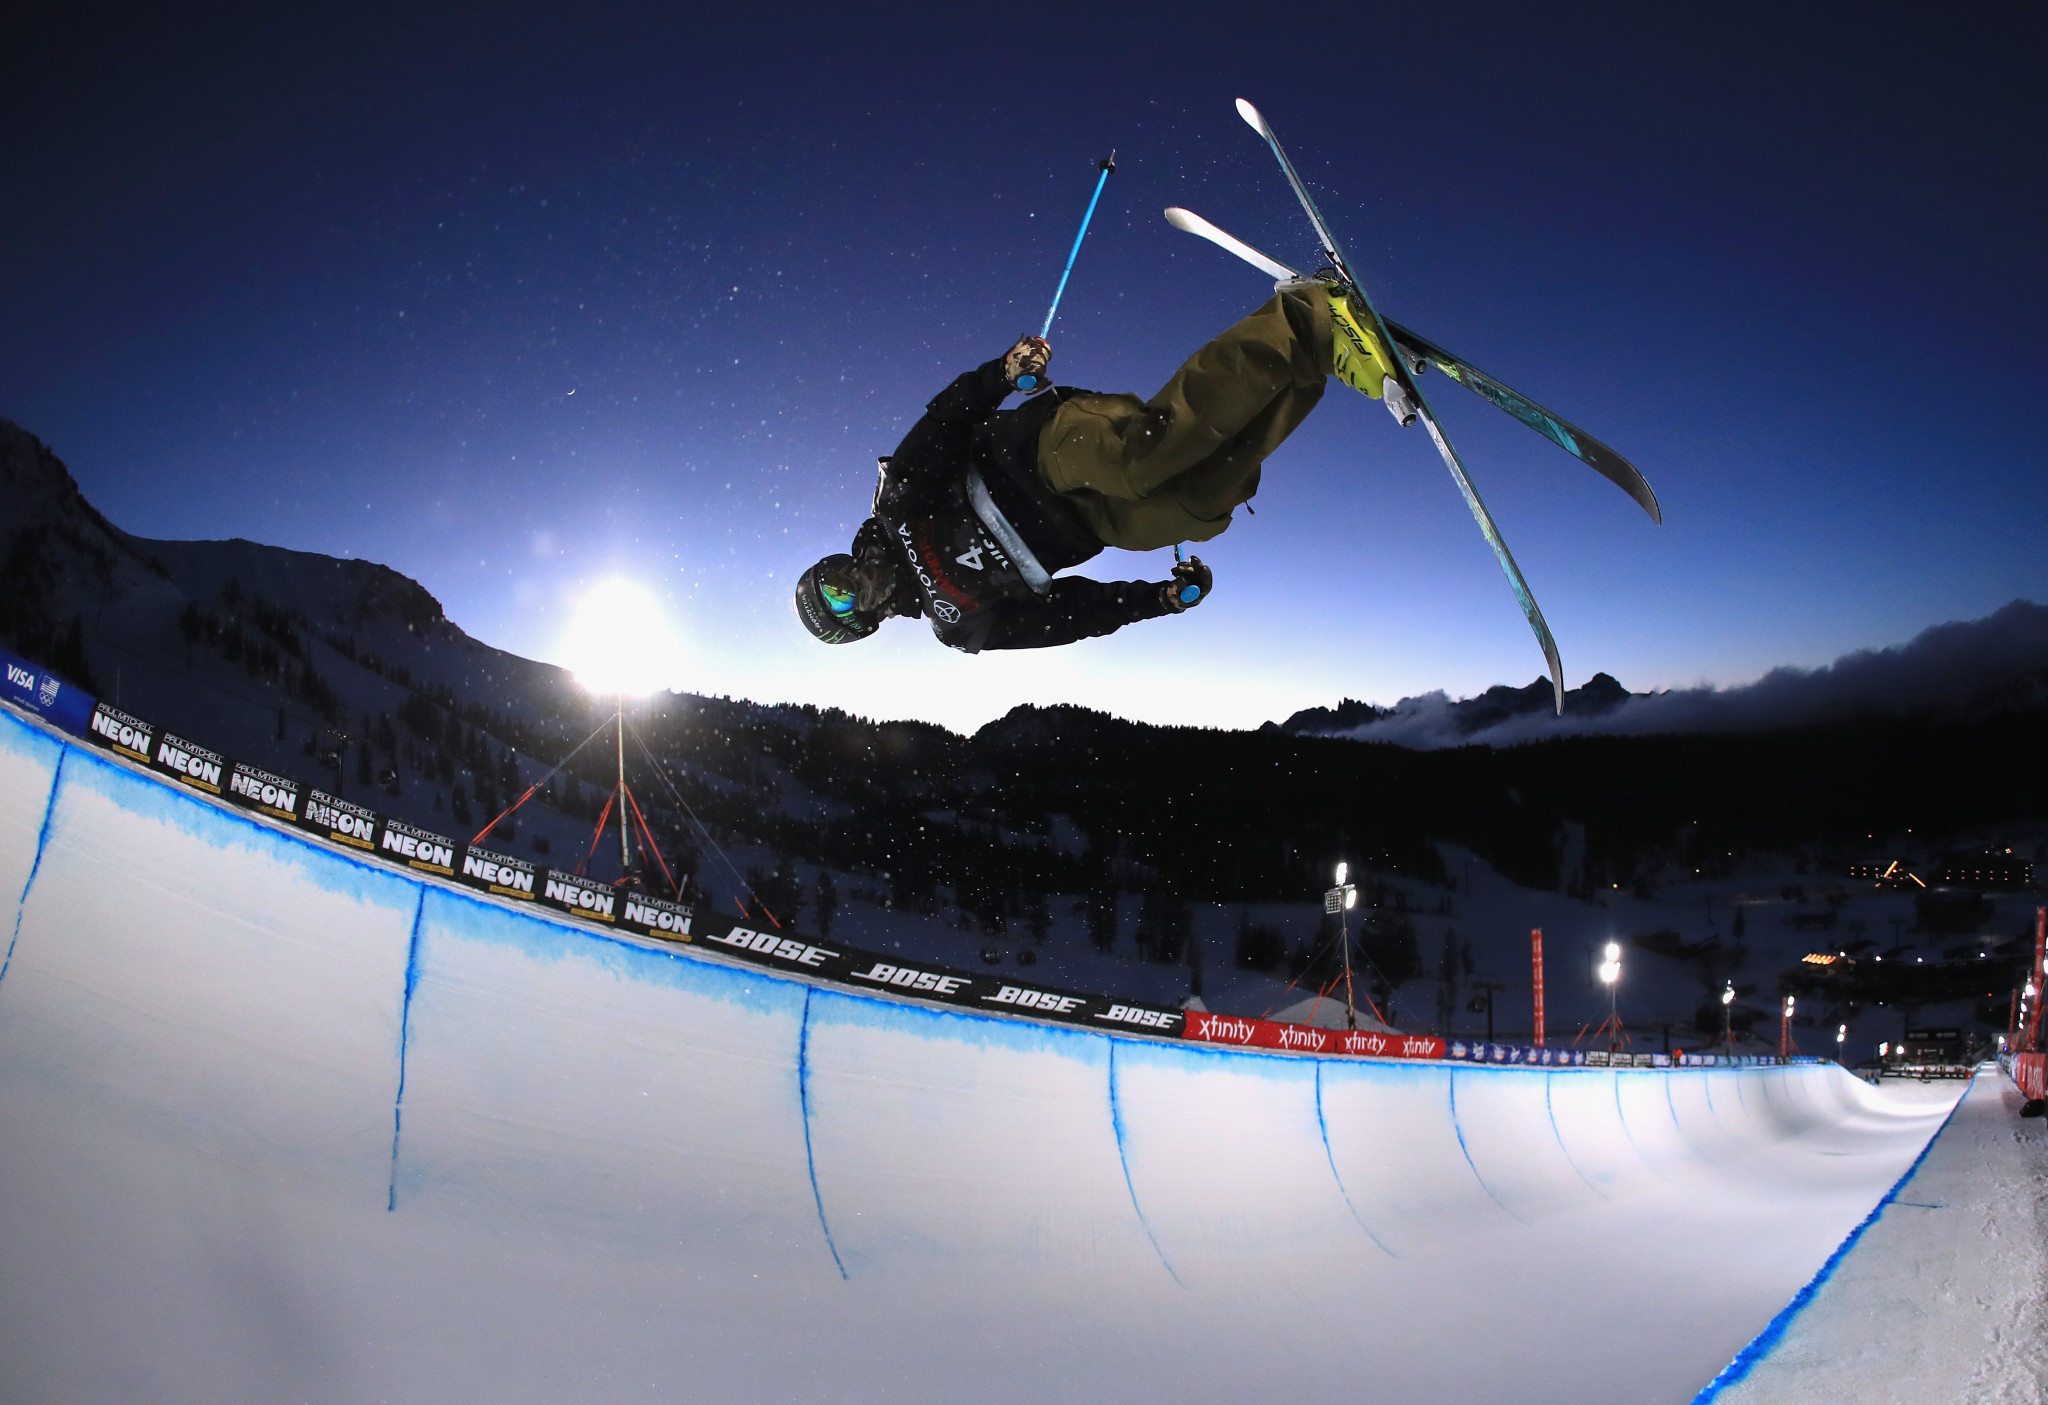 Snowboarding At The 2020 Olympic Winter Games.Leysin To Host Halfpipe Action At 2019 Fis Freeski And